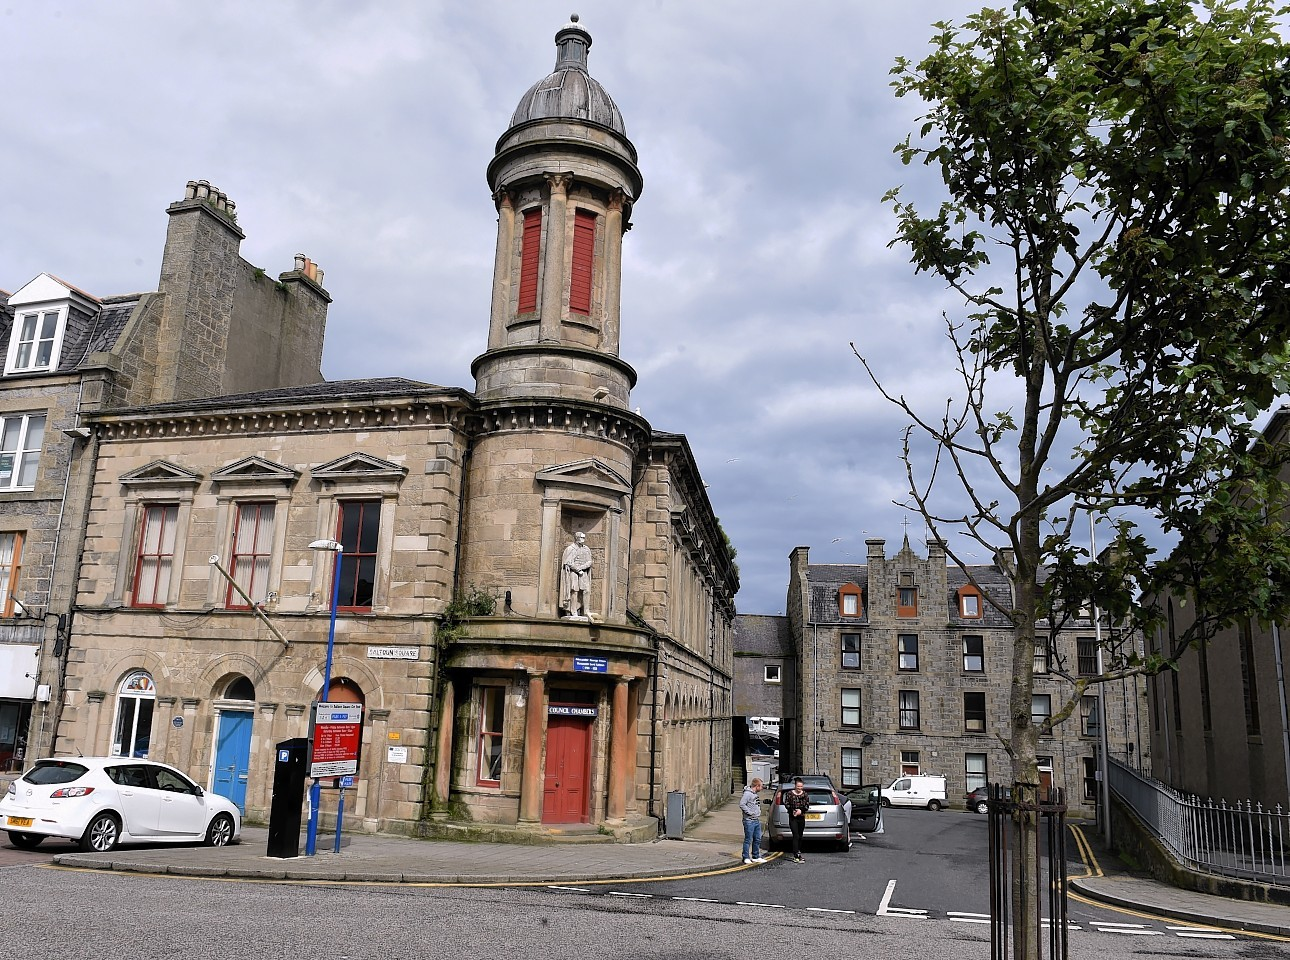 The port's town house.